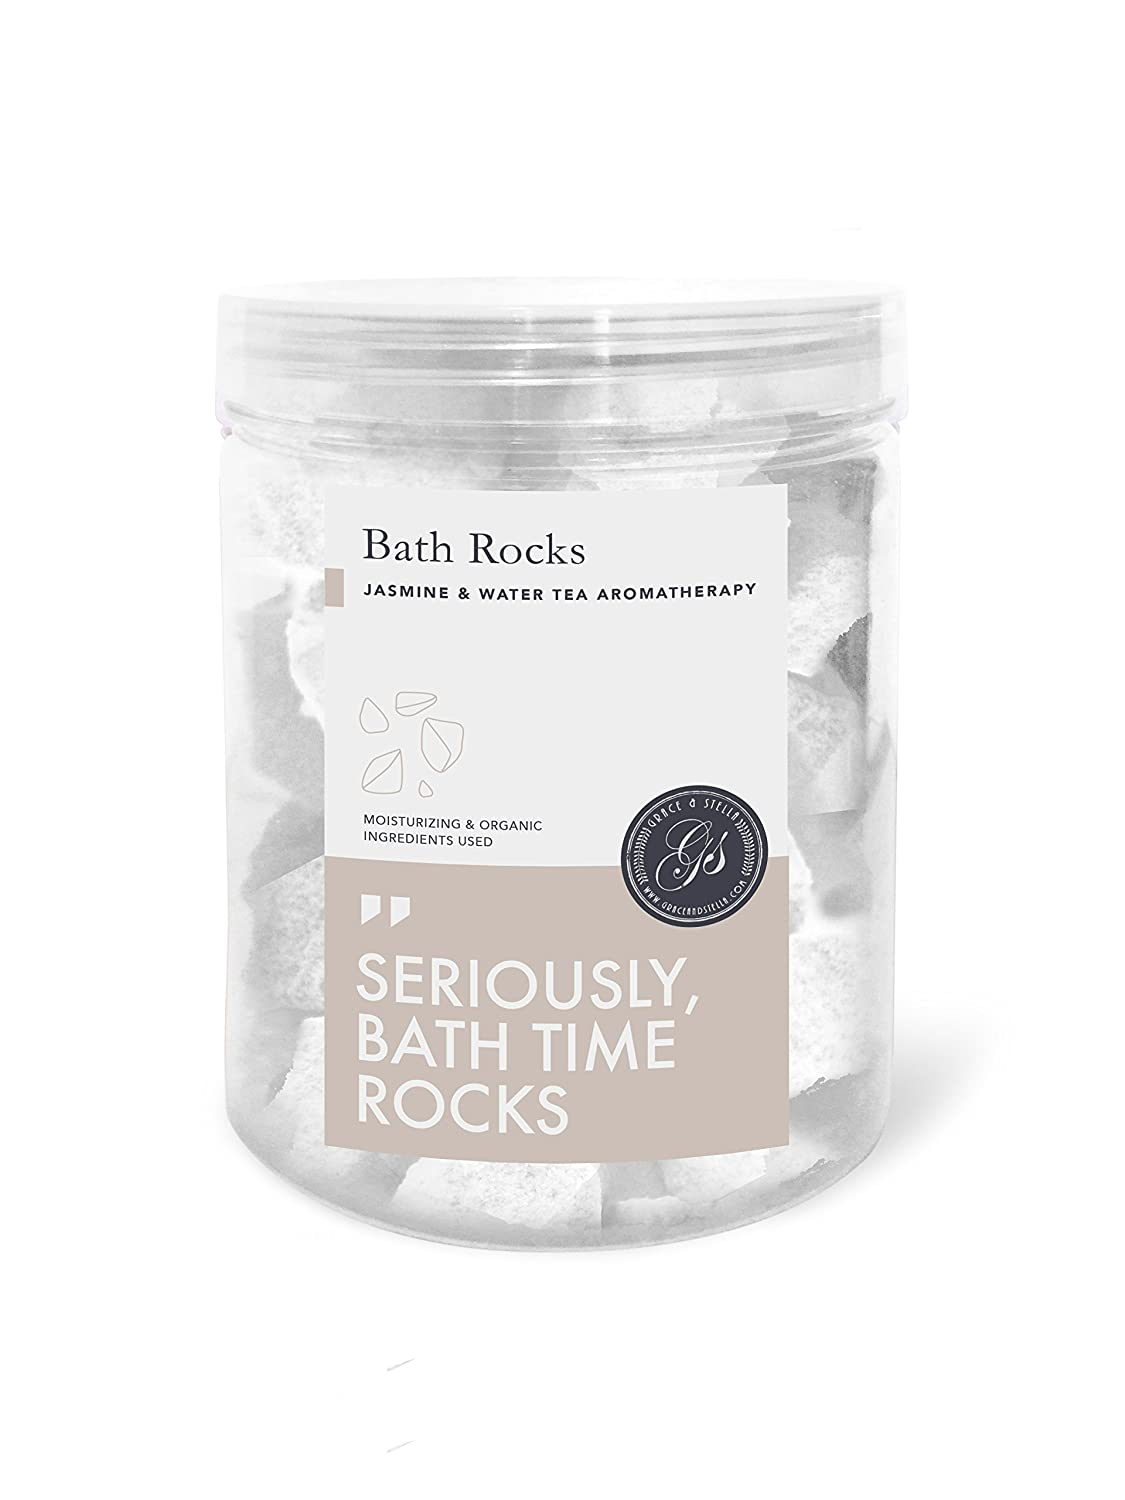 Bath Bubble Fizzy Rocks (320g, Rosemary) - Bath Bomb with Shea Butter for Moisturizing Dry Skin - Essential Oil Handmade Spa Fizzies - Top Relaxation Box, Best Gift Idea! ** As Seen on Dragons Den ** Grace & Stella Co.